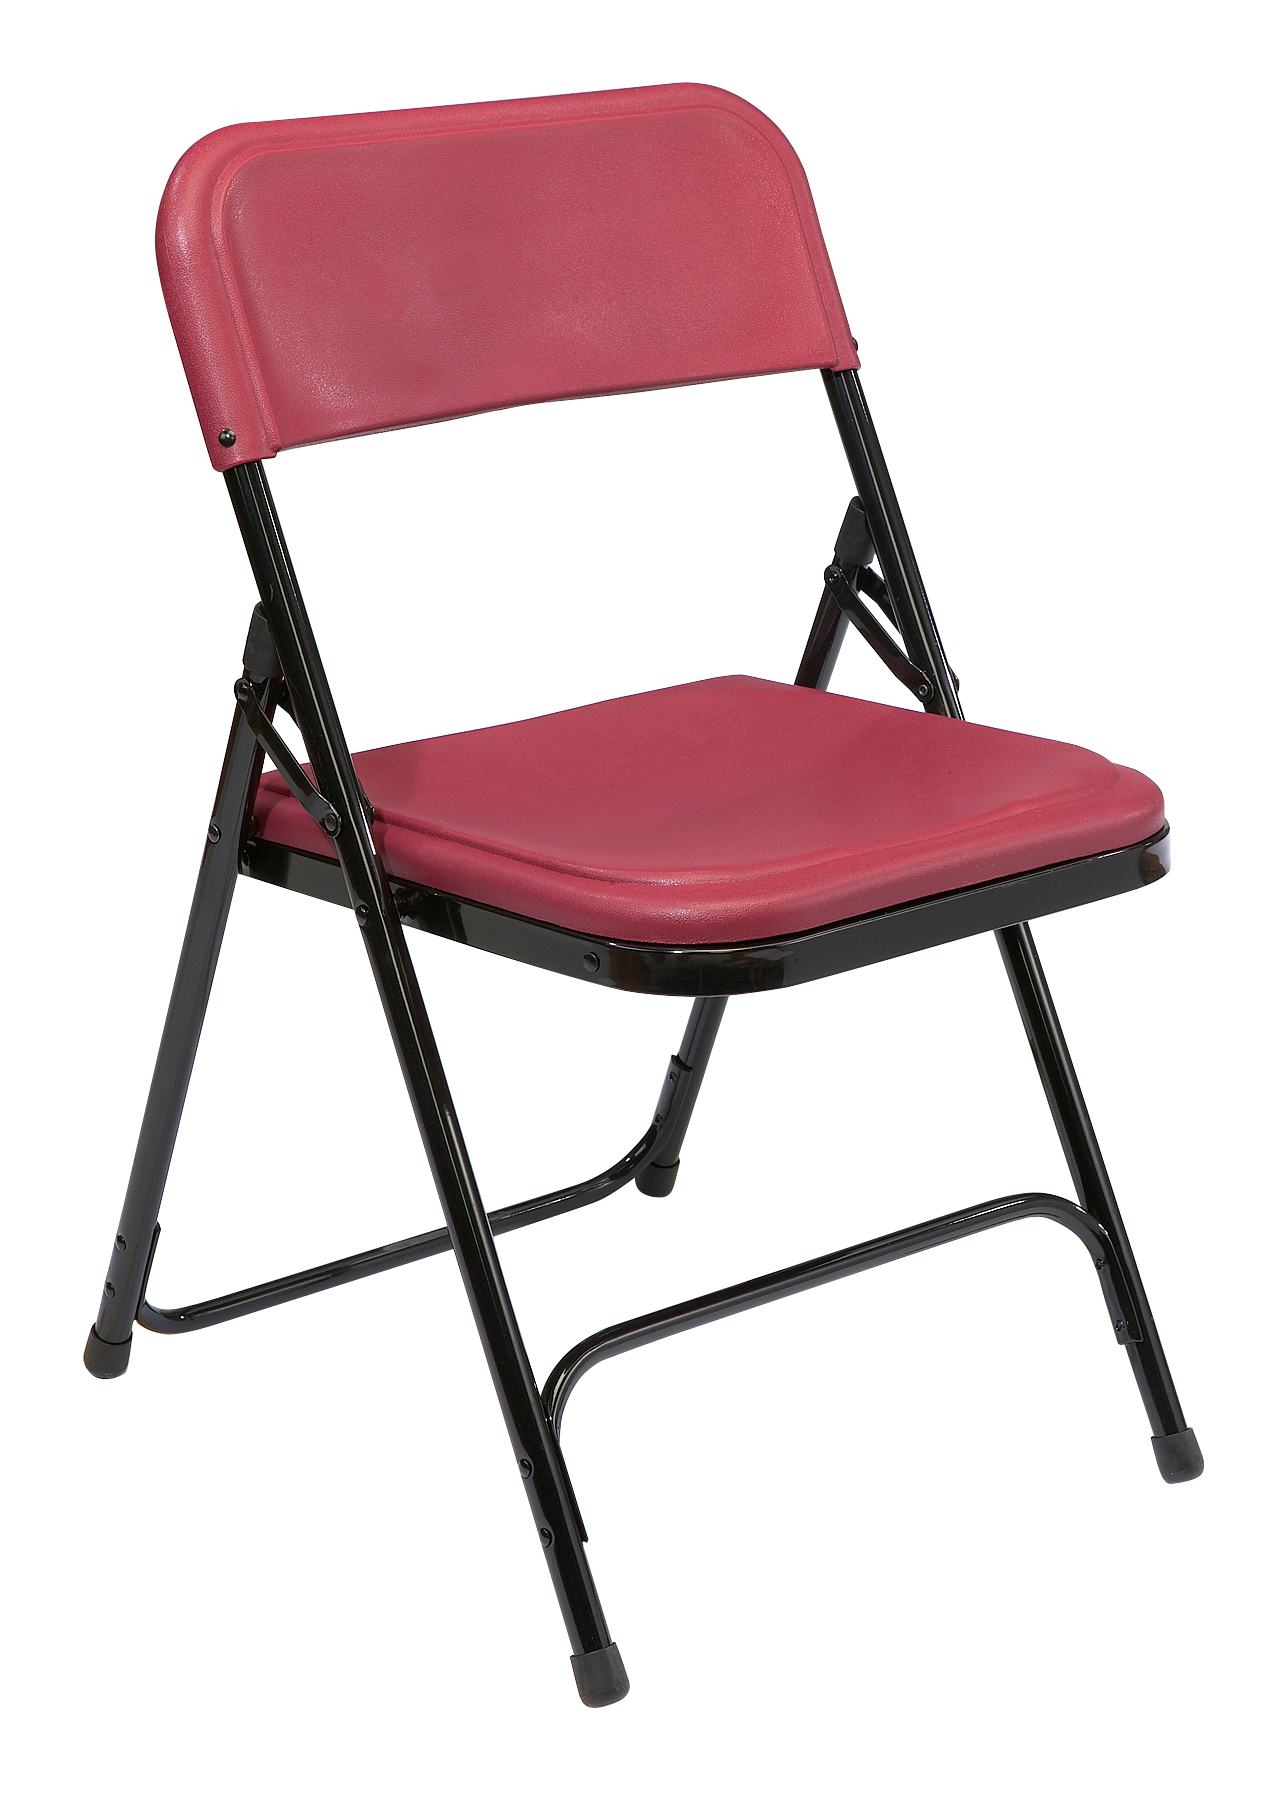 folding chair dolly lifetime tables and chairs vertical cart handtrucks2go